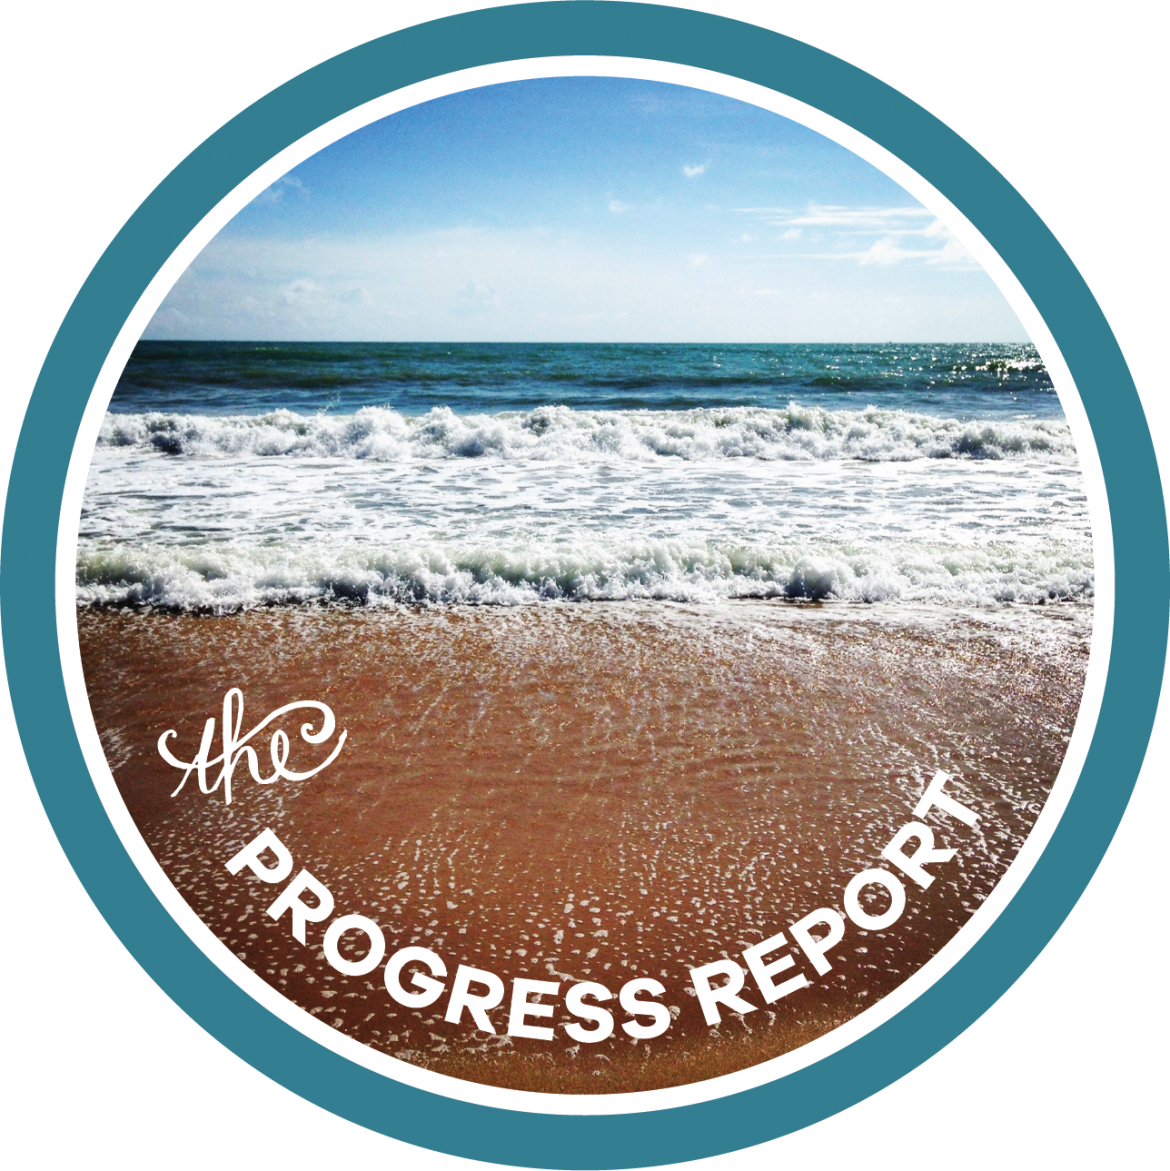 Change-A Progress Report/Eileen